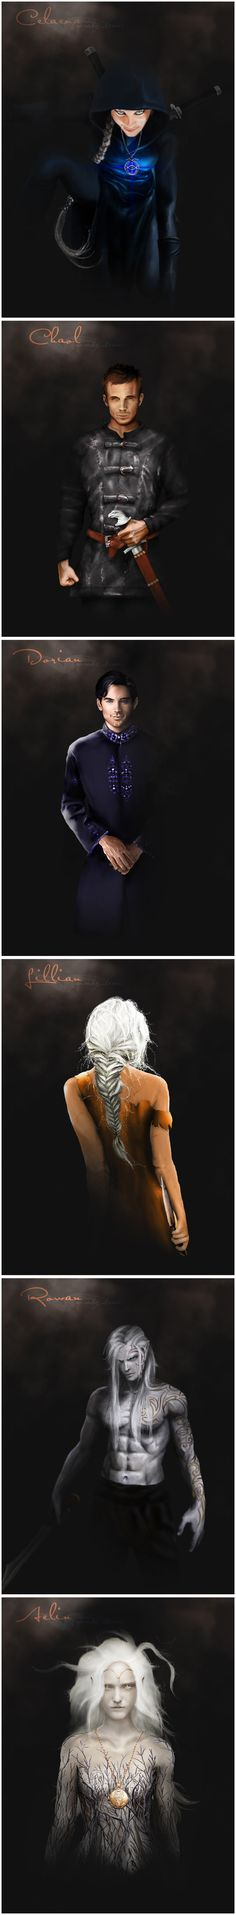 Throne of Glass characters by @uponadaydreamer. Fan art, all the way!